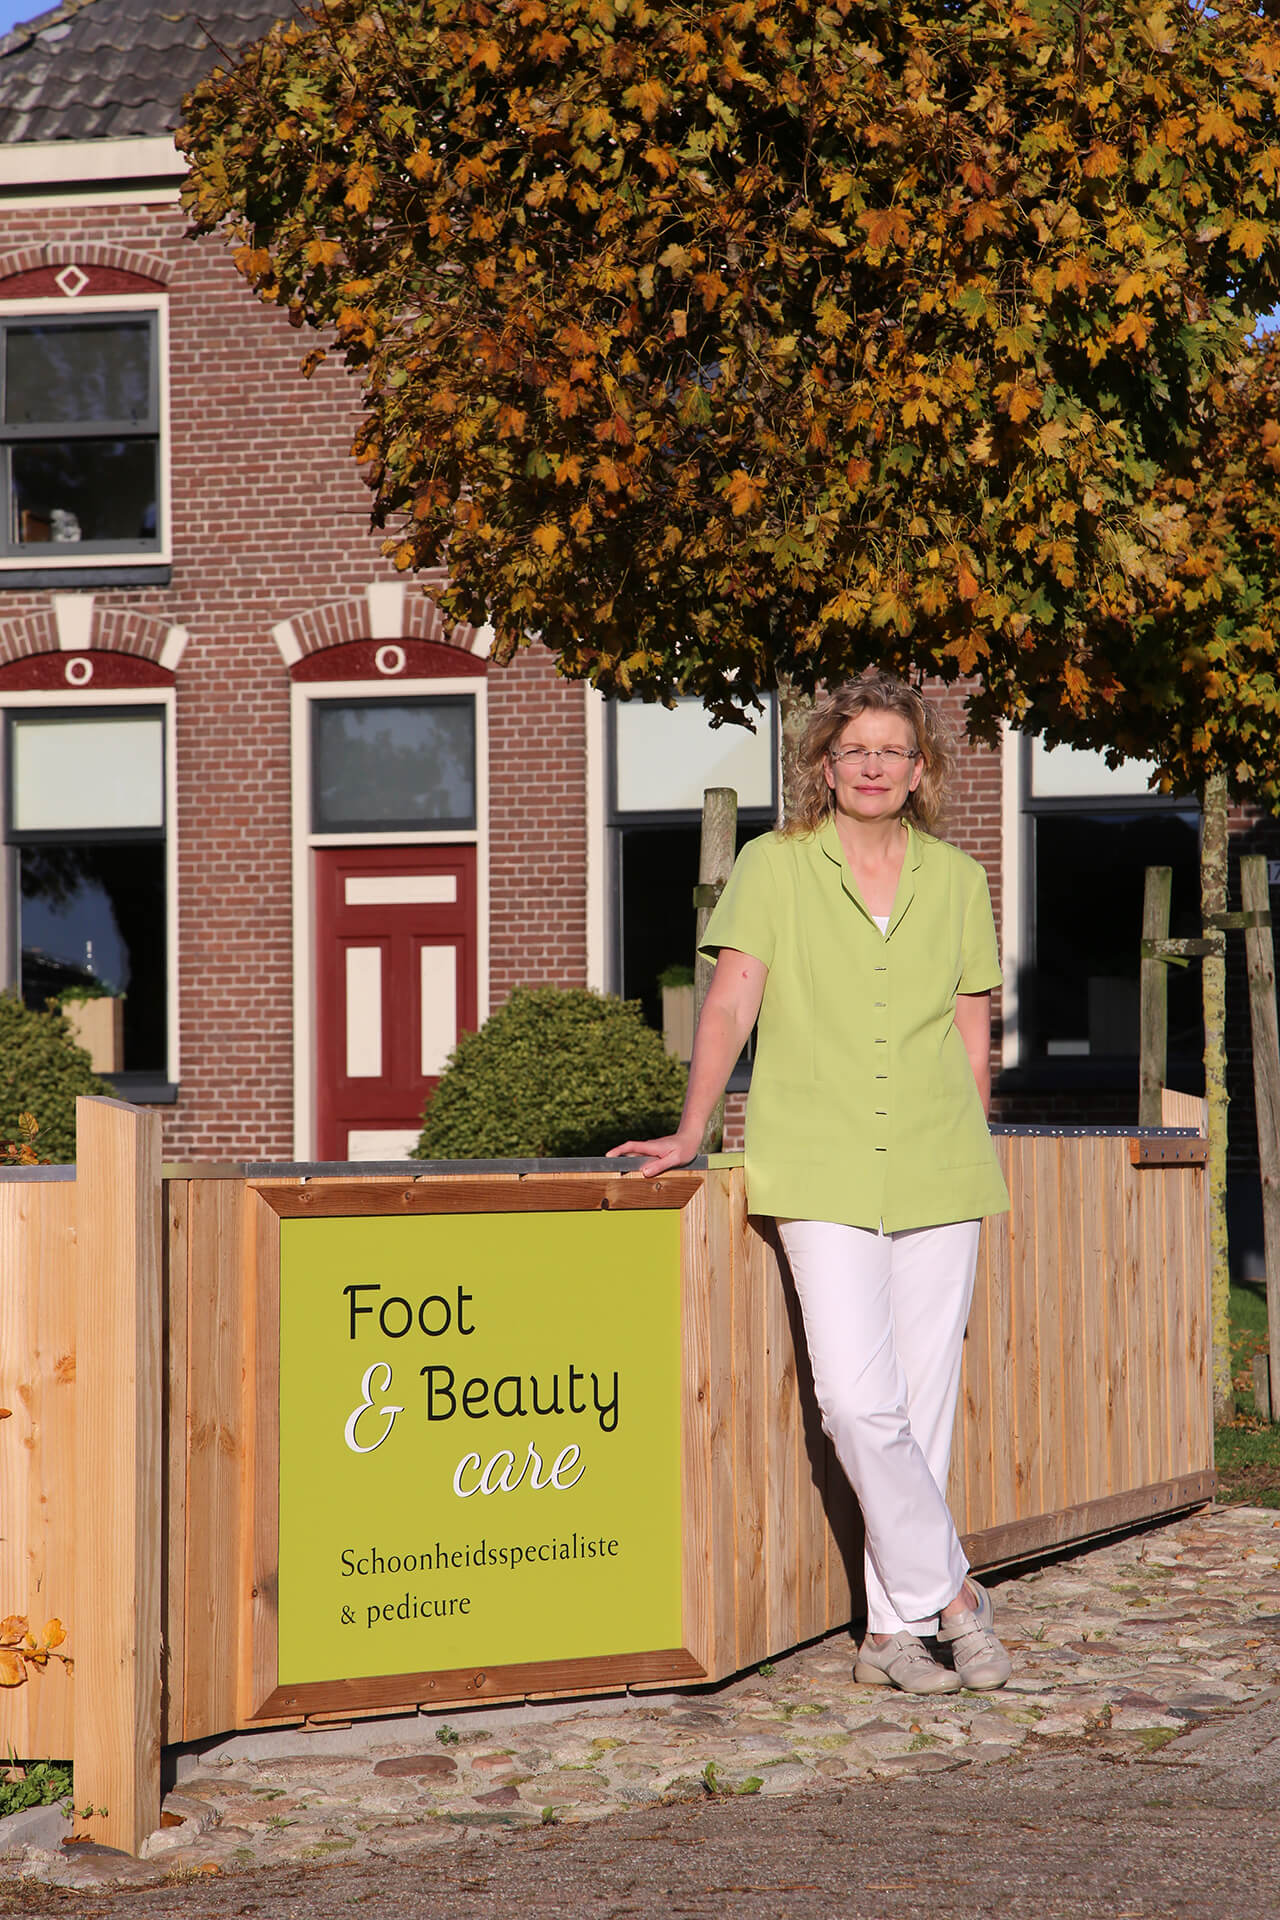 Bettie Hummel Schoonheidssalon en Pedicure Foot & Beauty care